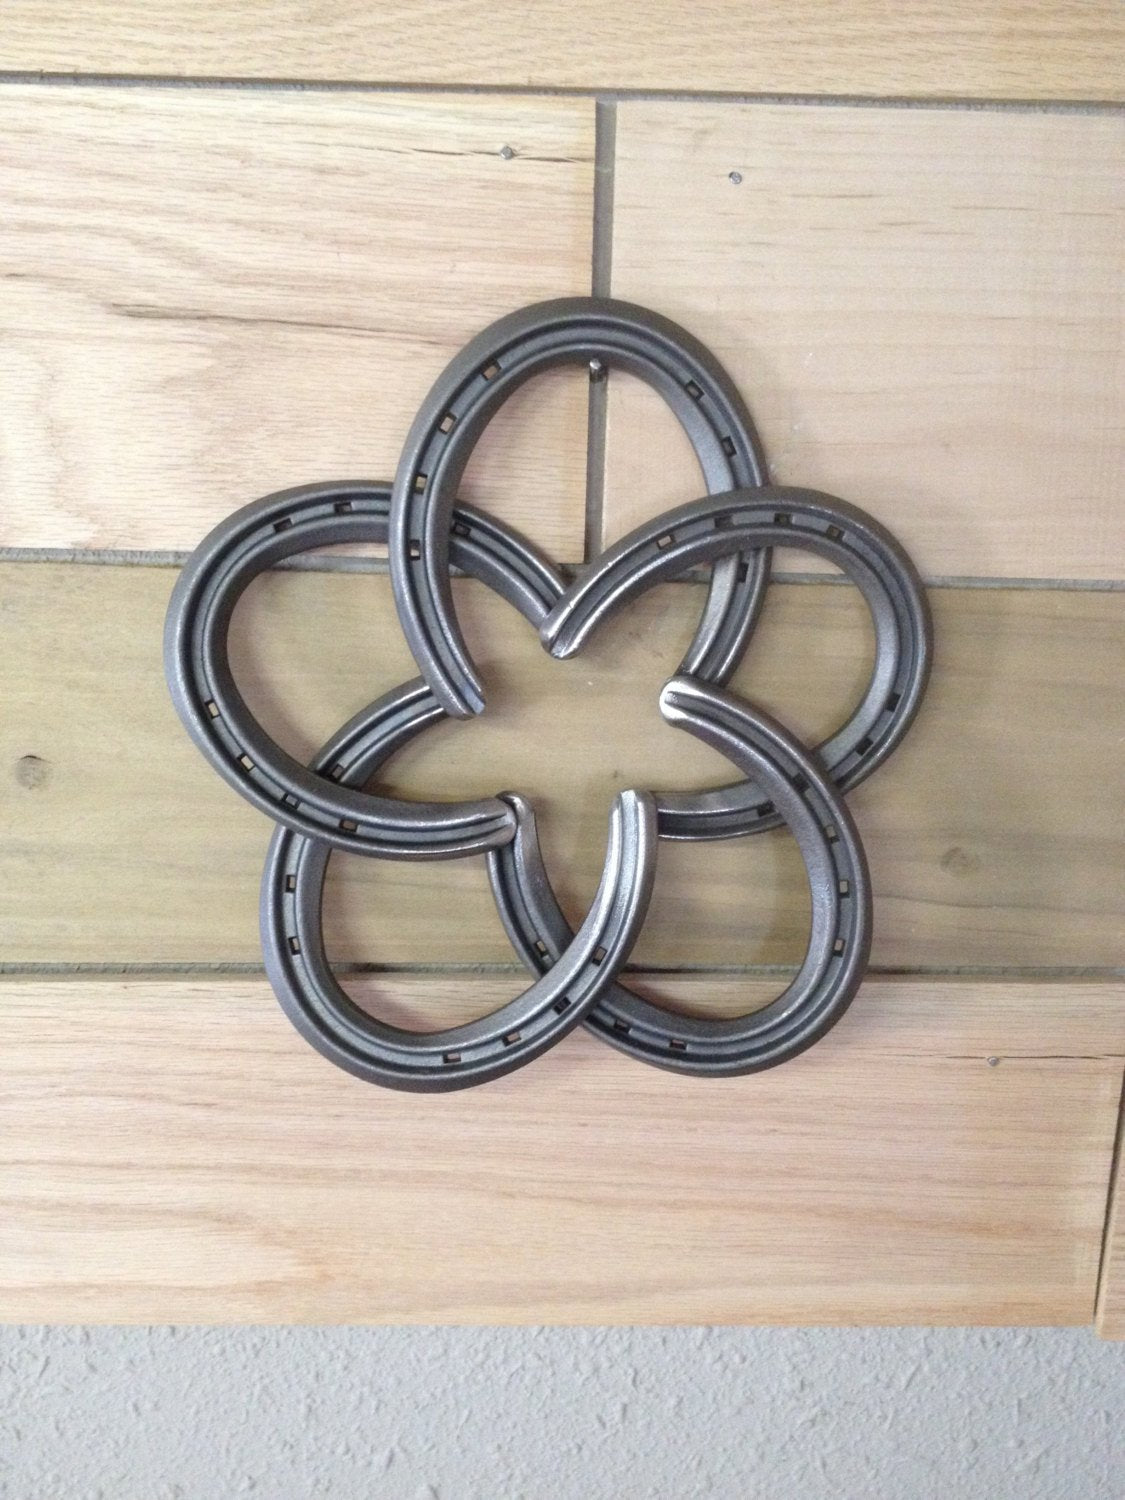 Rustic Horseshoe Star - The Heritage Forge